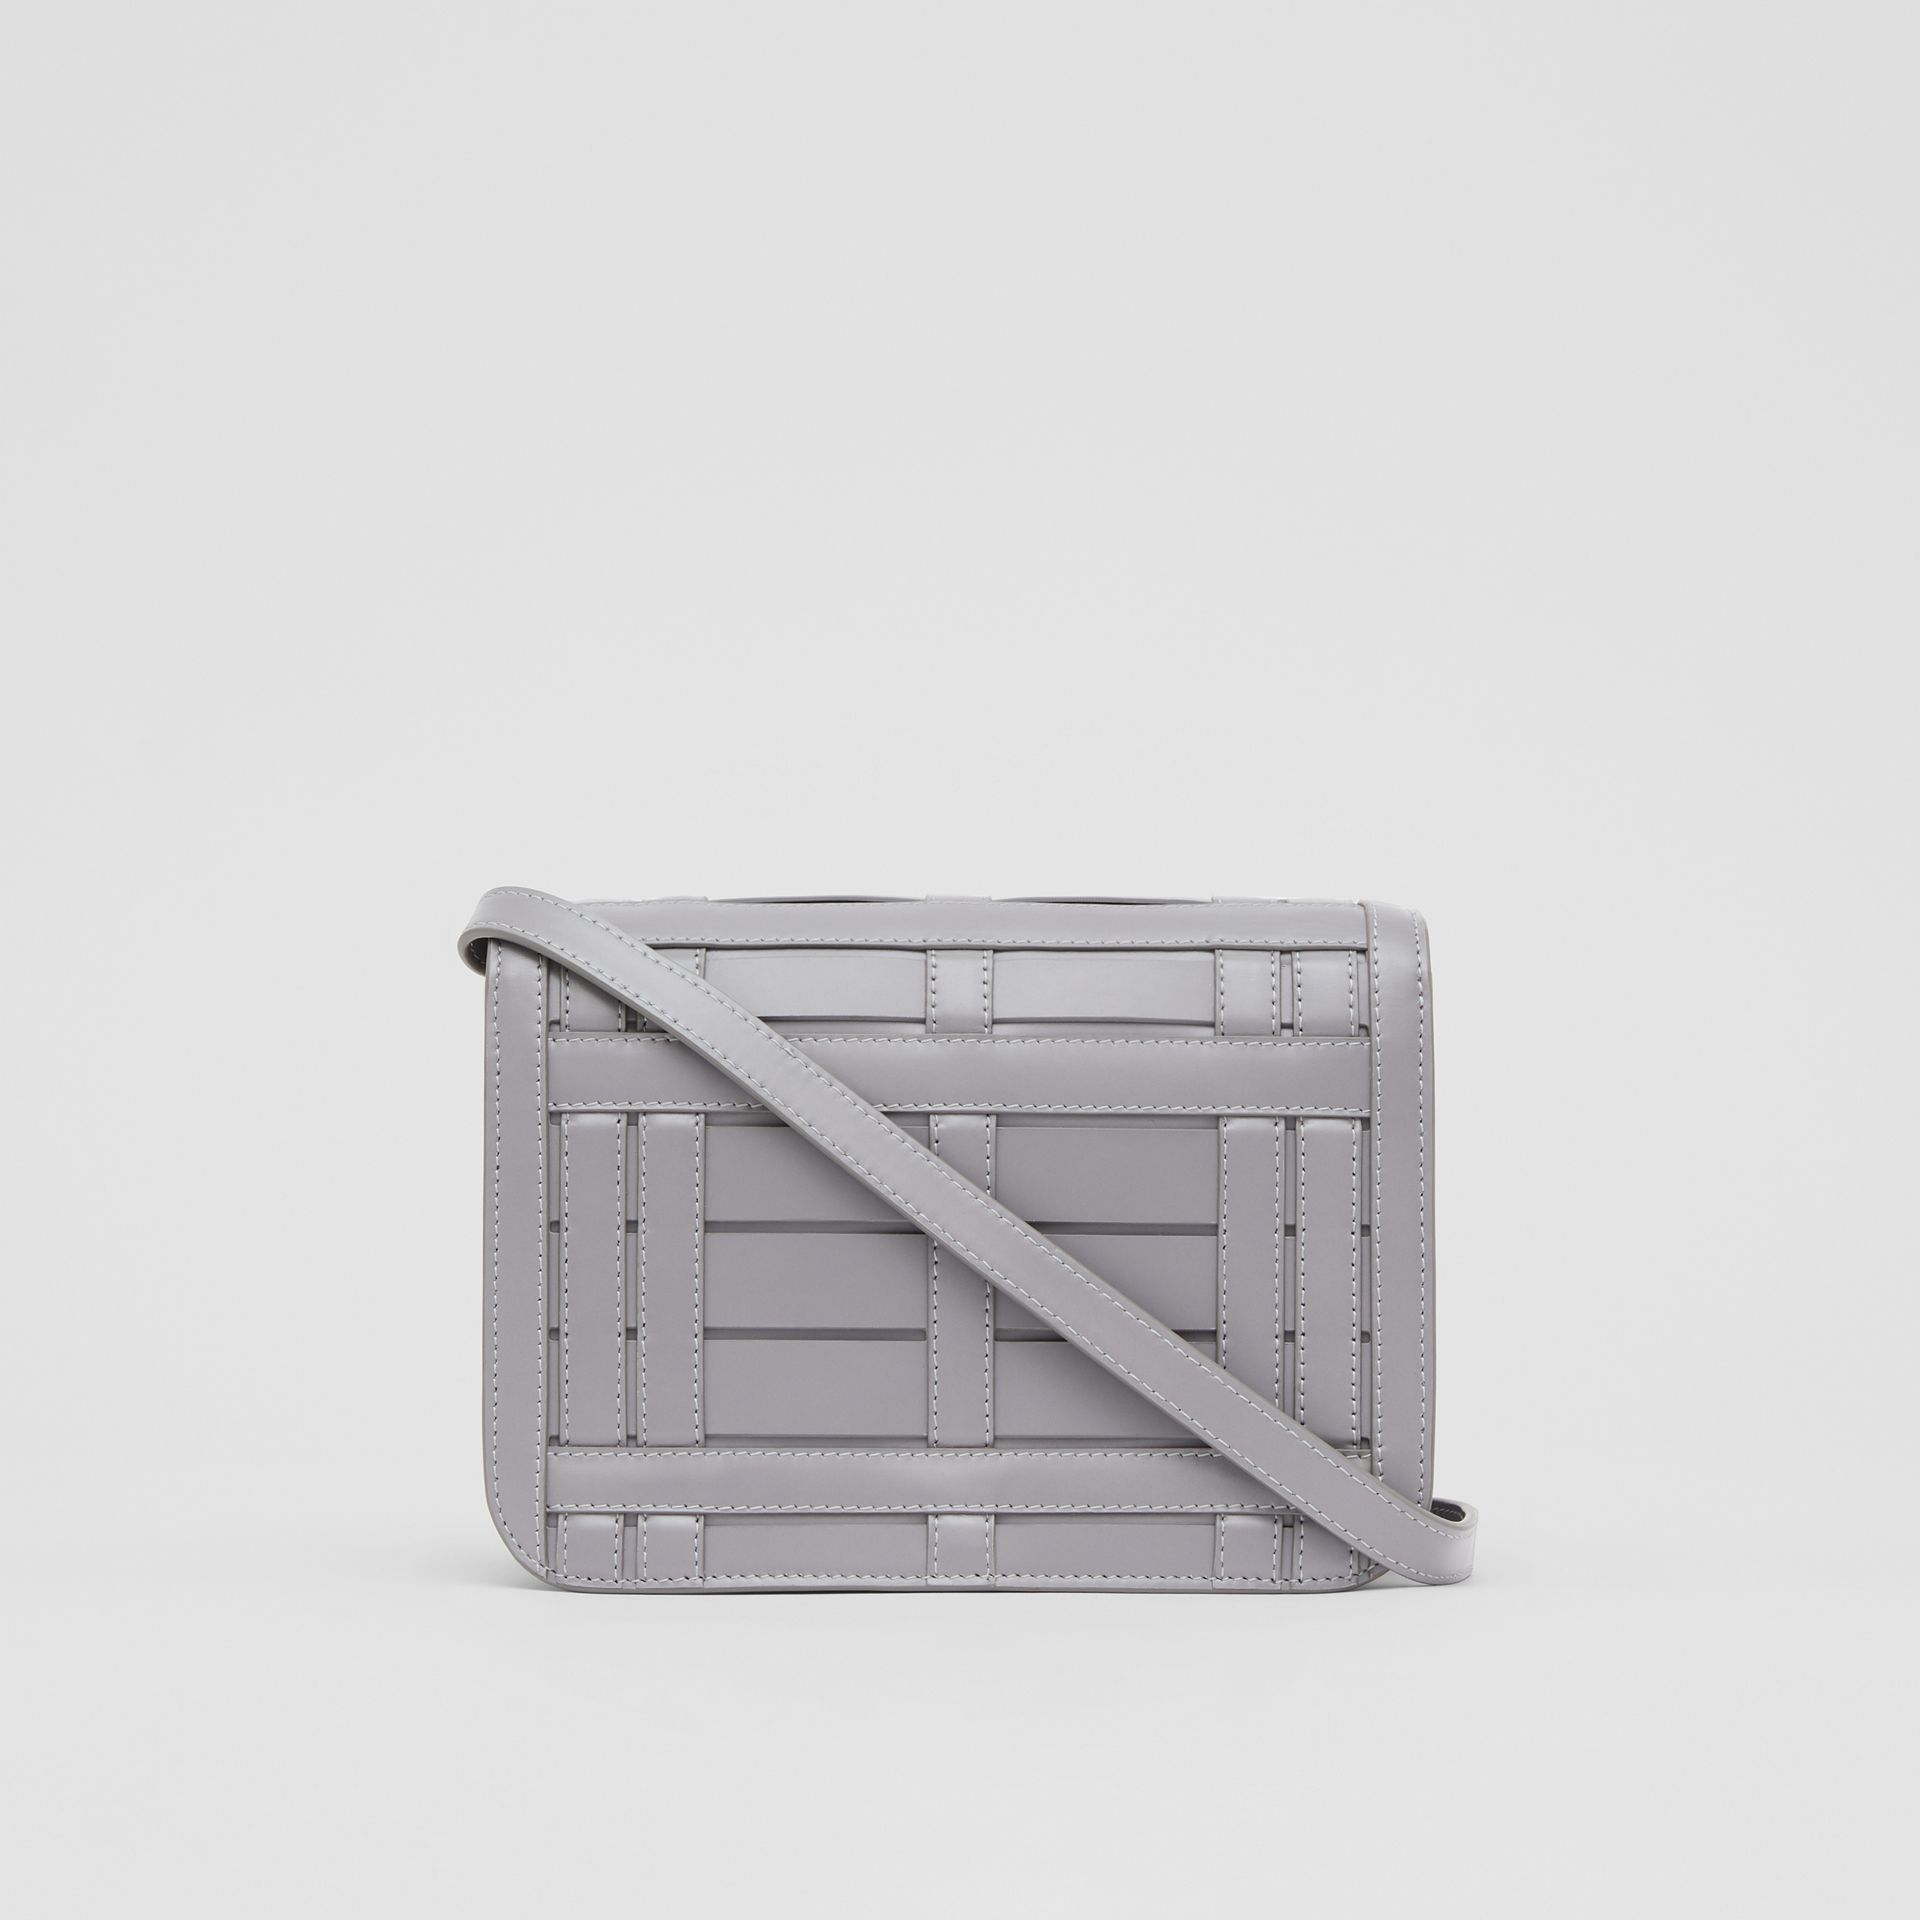 Small Woven Leather TB Bag in Cloud Grey - Women | Burberry - gallery image 7